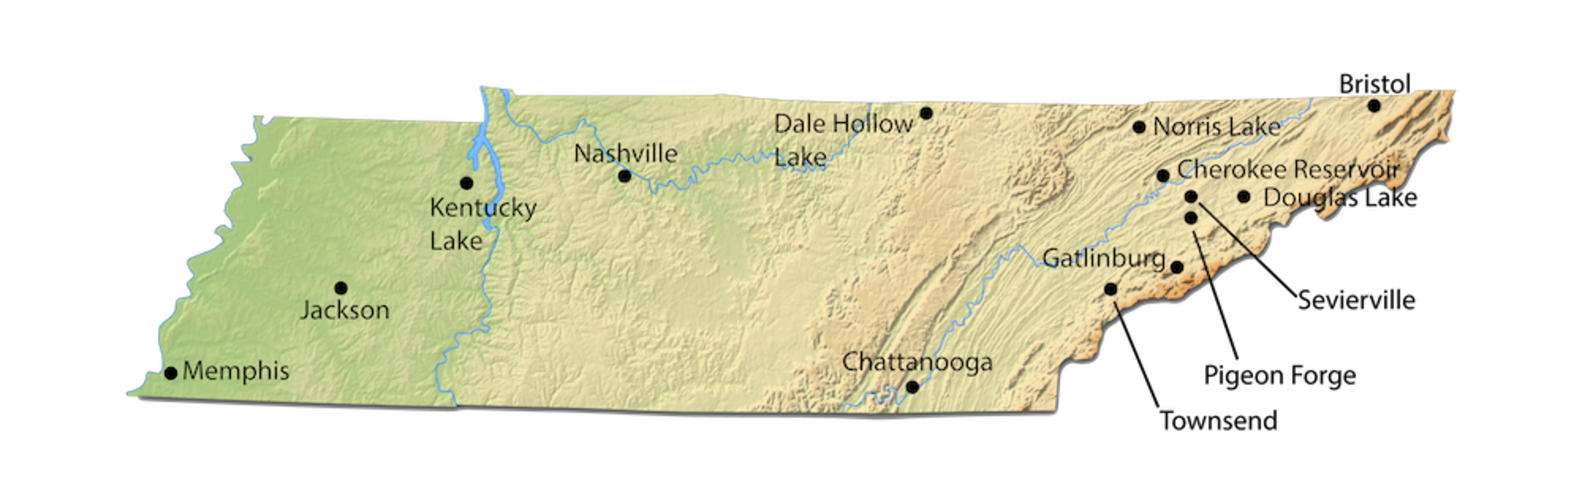 Tennessee City Map for Cabin Rentals